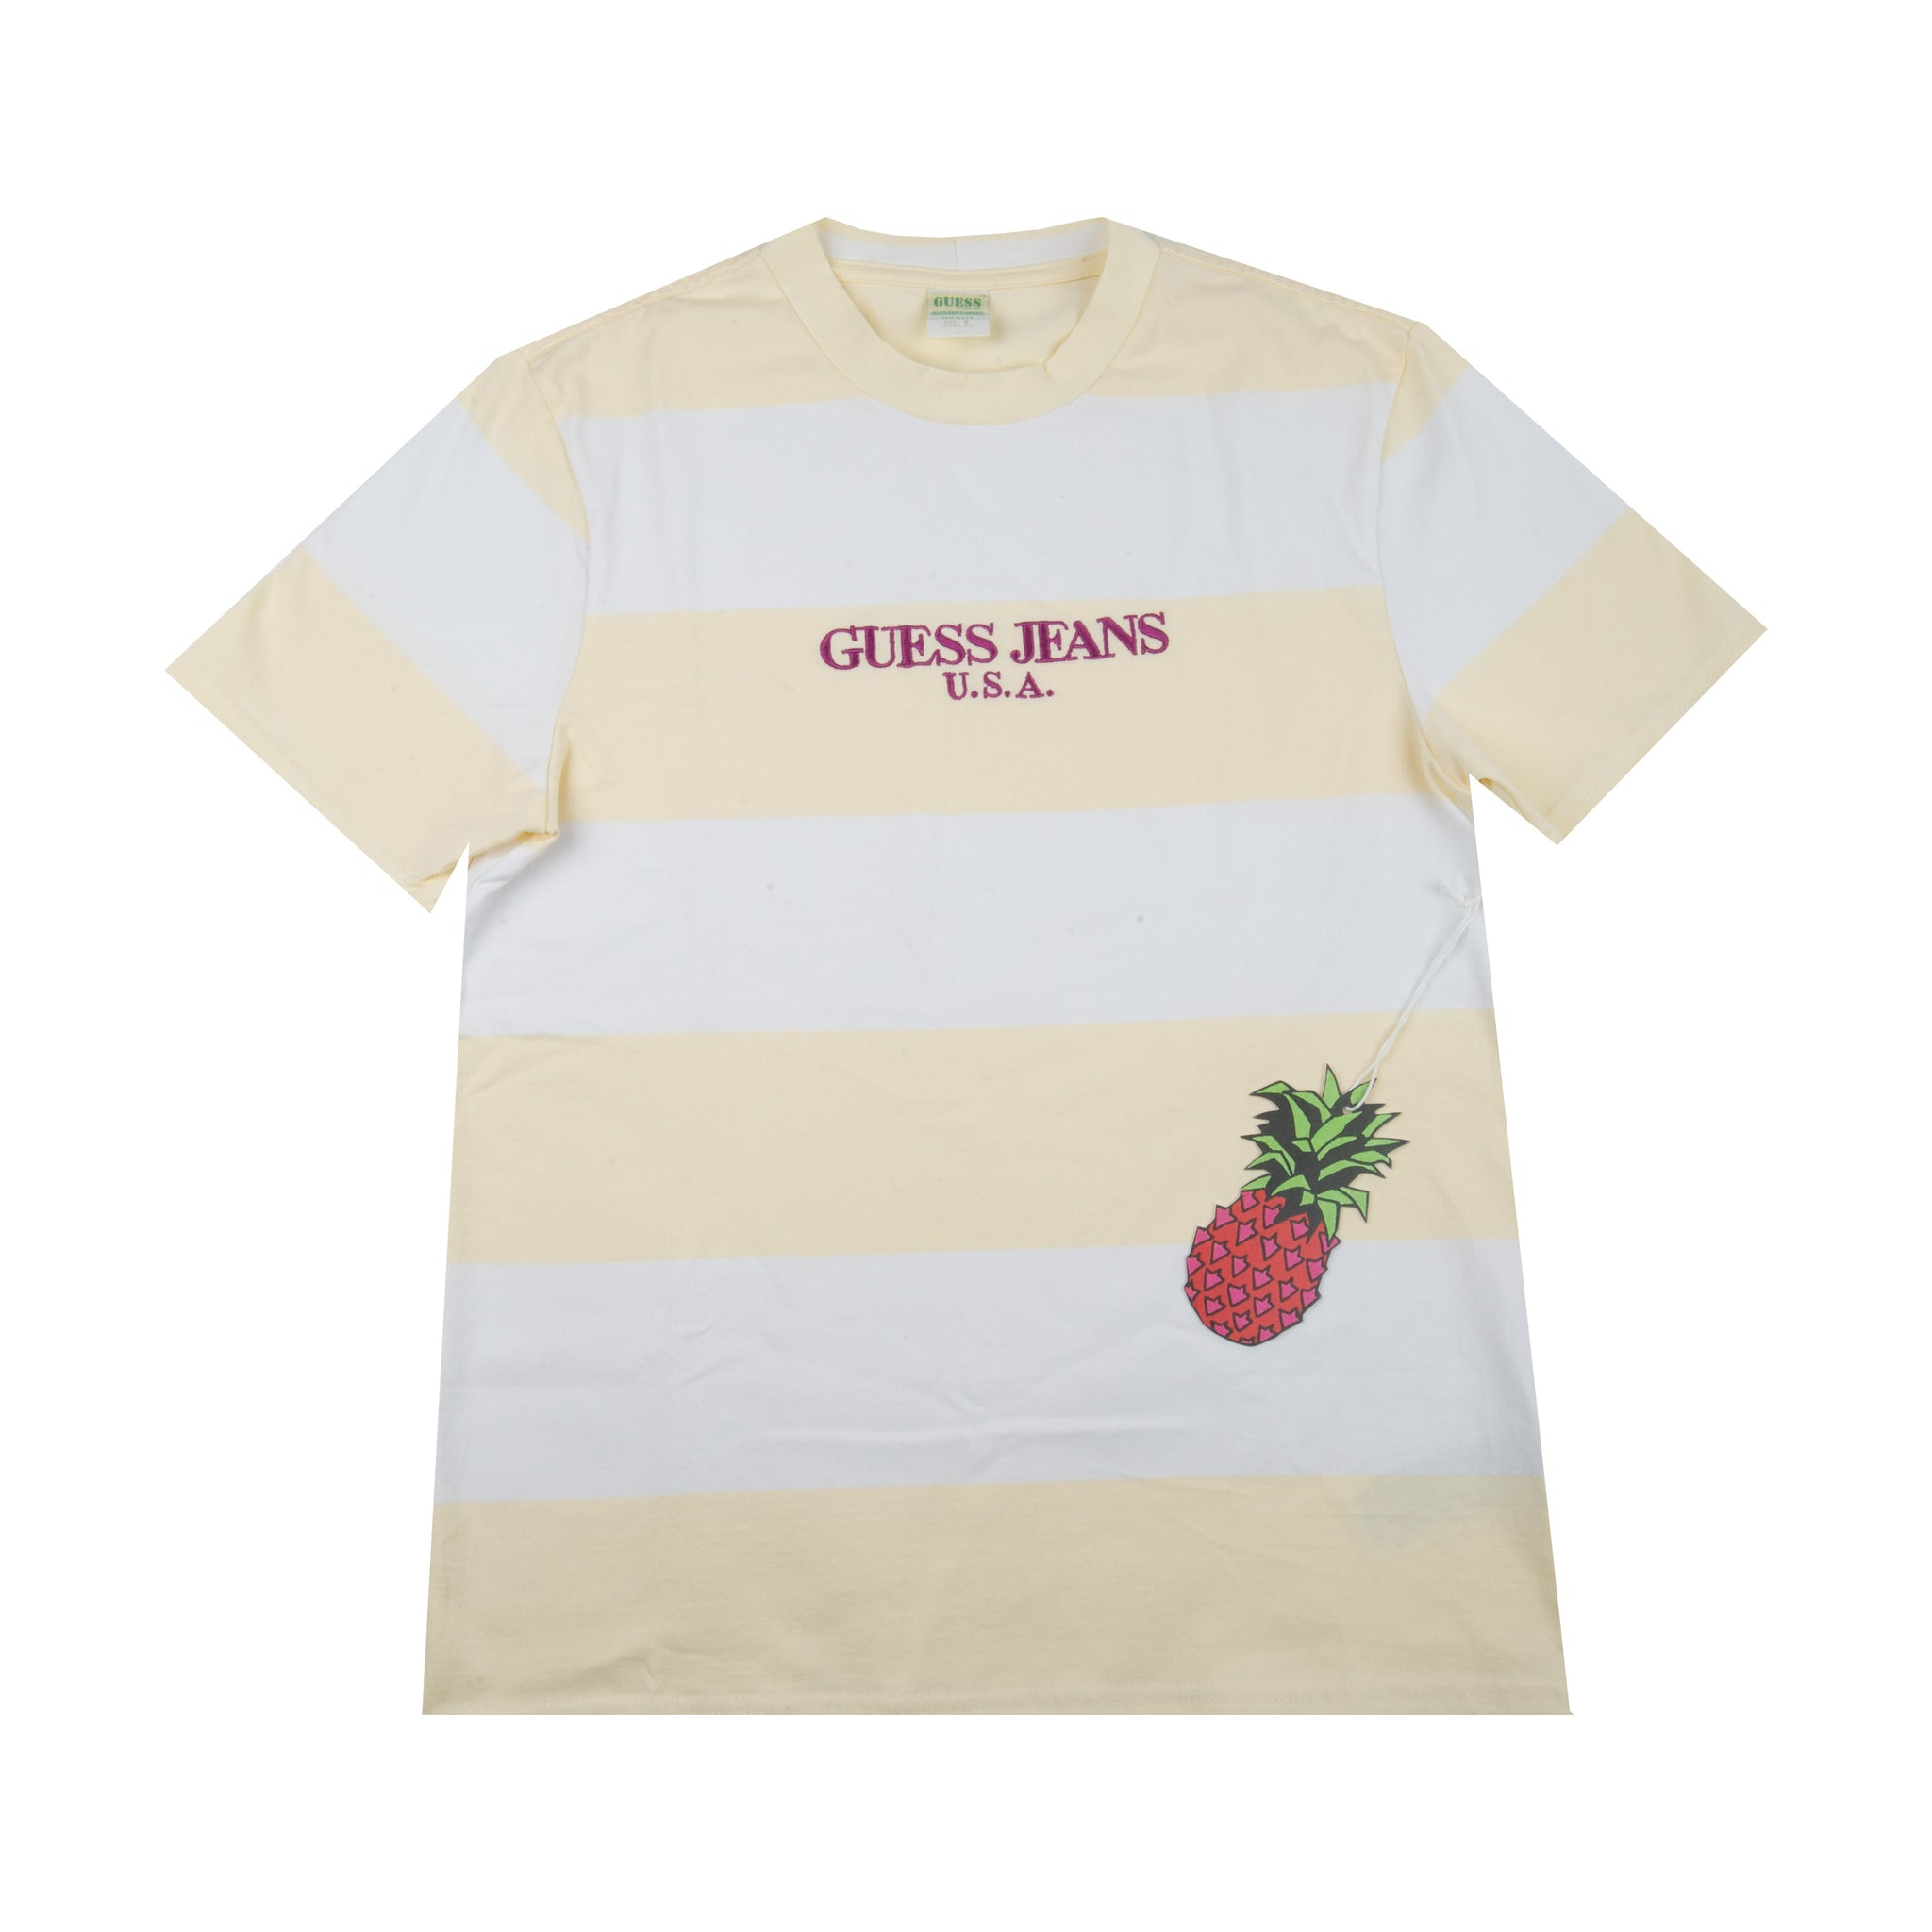 Guess Jeans Winter White Rugby Striped Tee